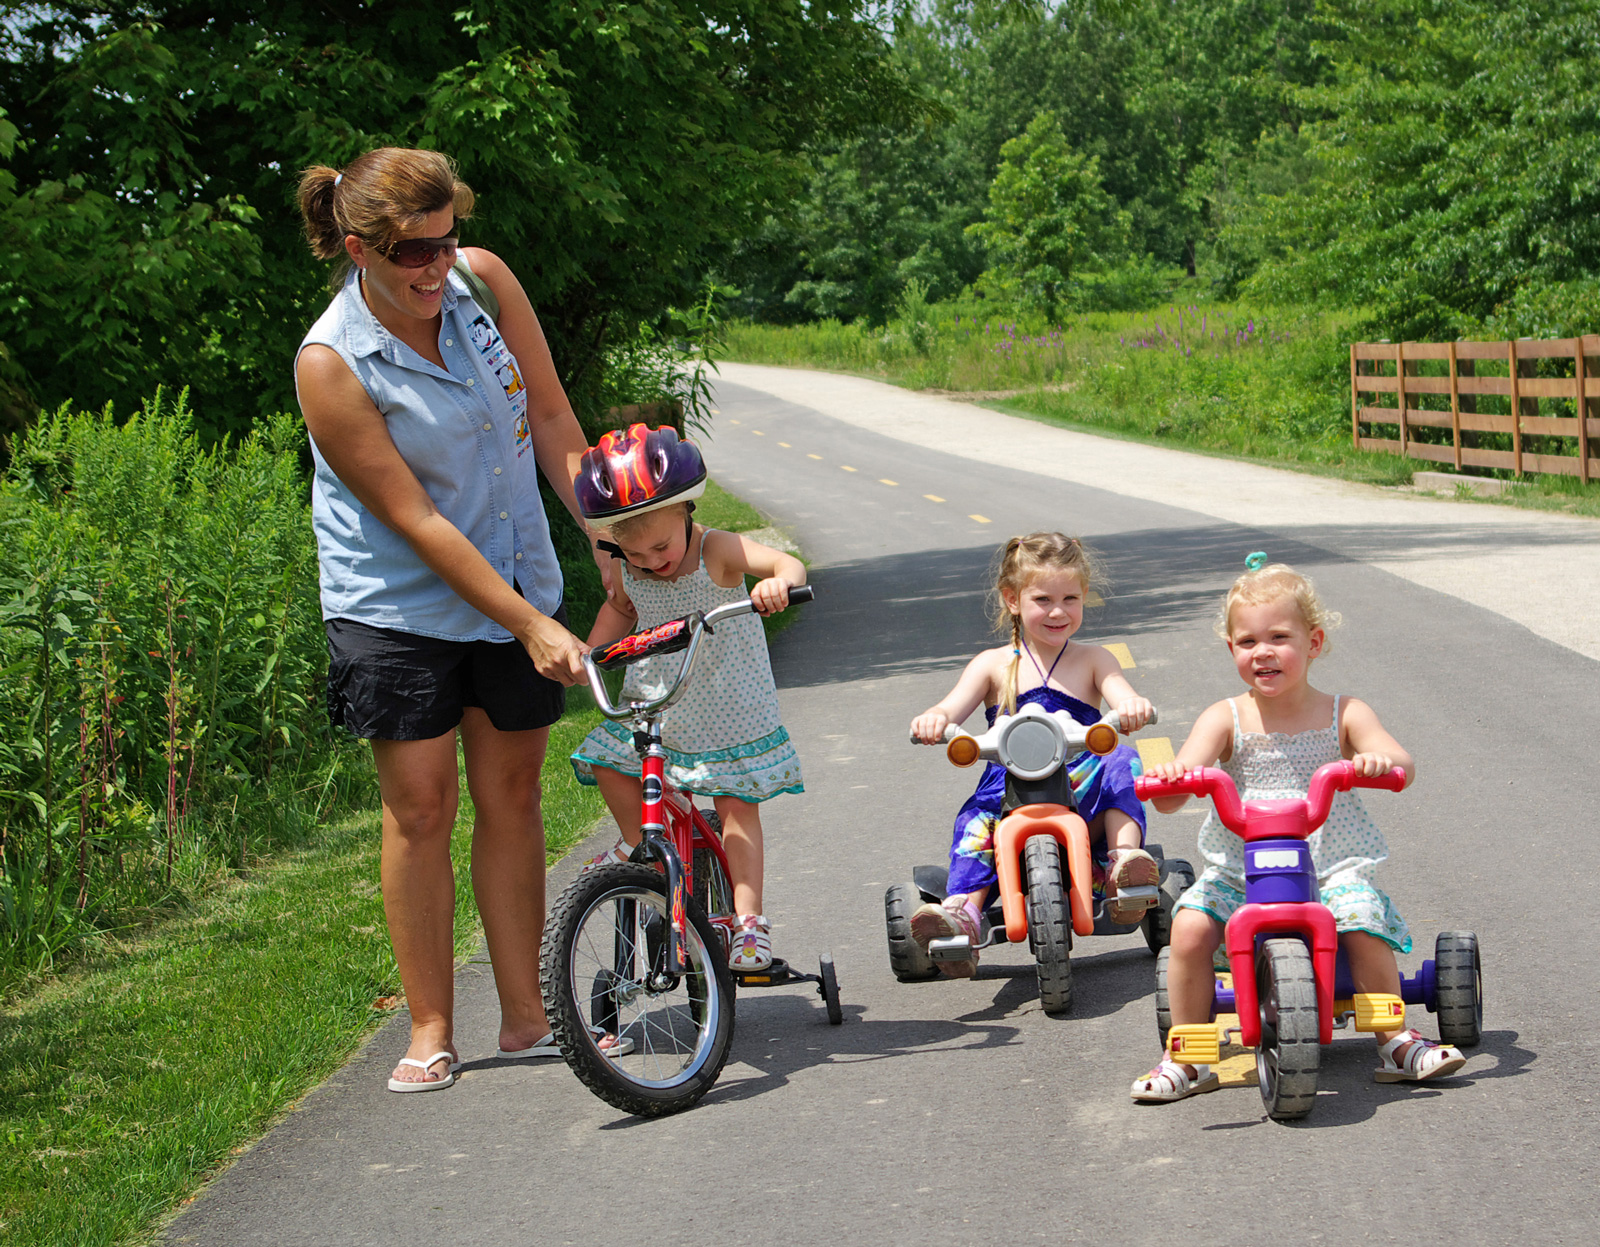 Three young tricyclists with adult supervision on the Multi-use Trail at Blacklick Woods.